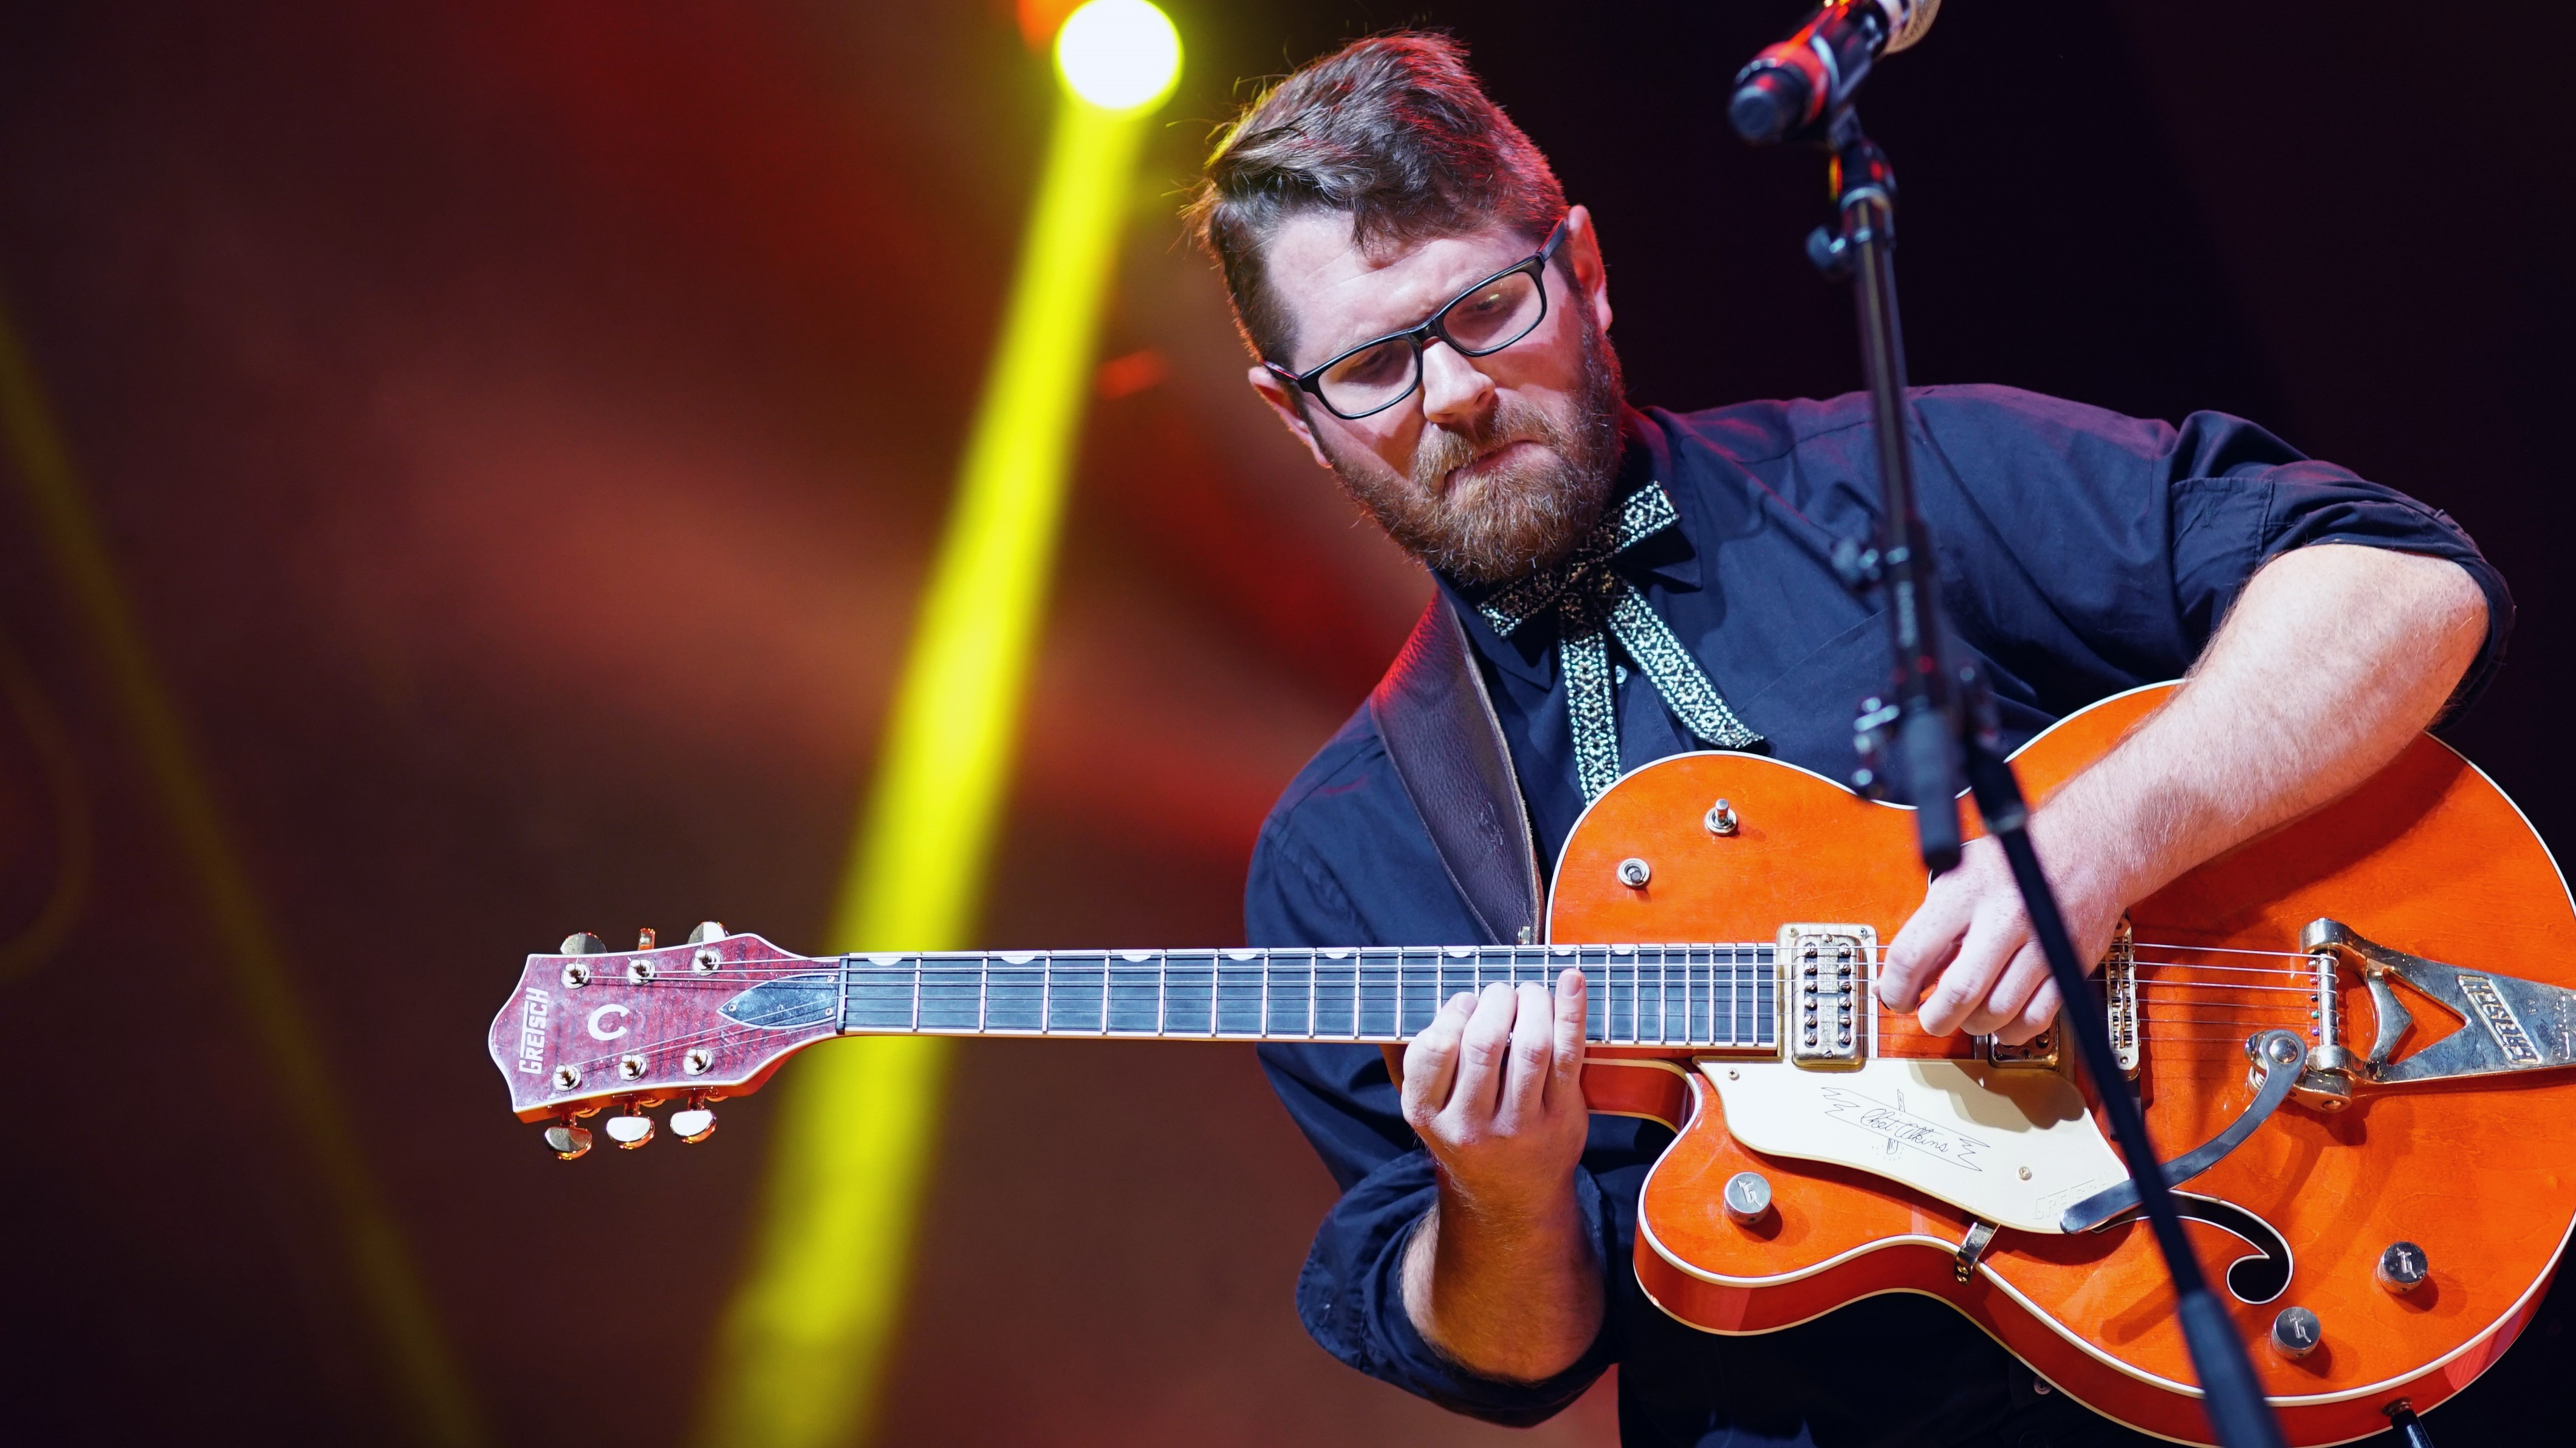 Gretsch Welcomes The Young Fables' Wes Lunsford to the Artist Roster